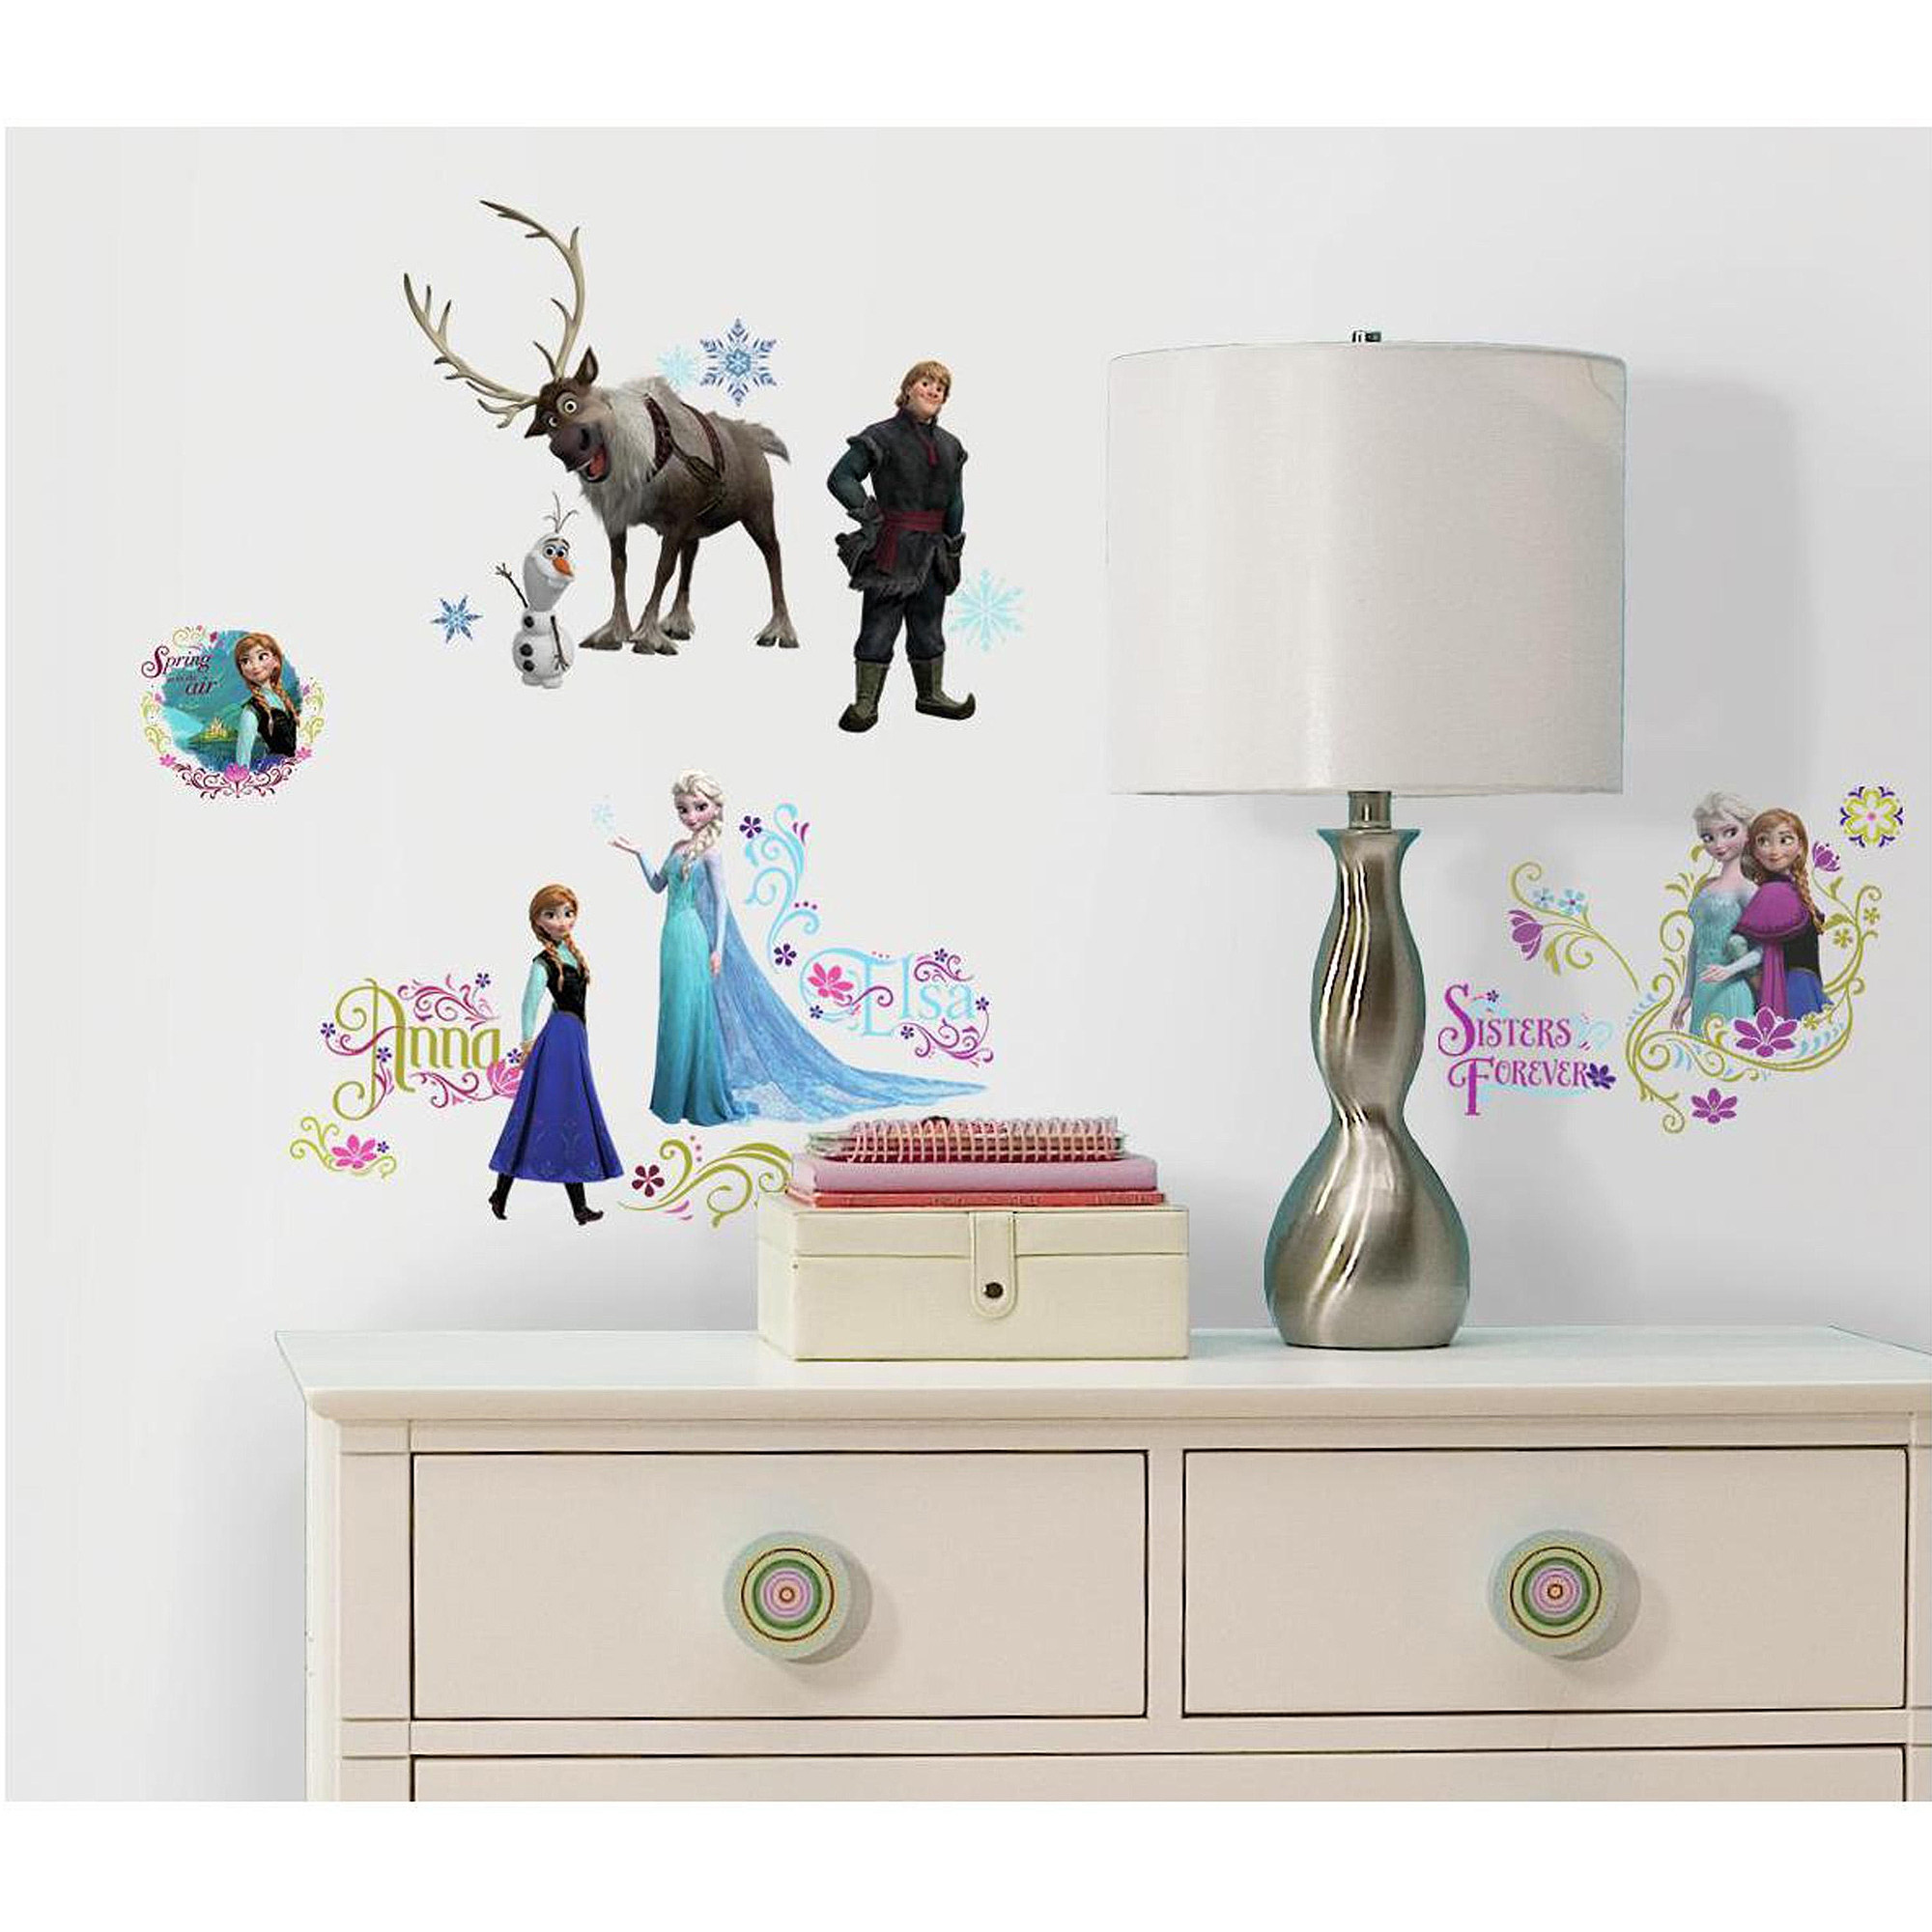 Best ideas about Coffee Kitchen Decor Walmart . Save or Pin Kitchen Curtain and Swag Set Coffee Walmart Now.